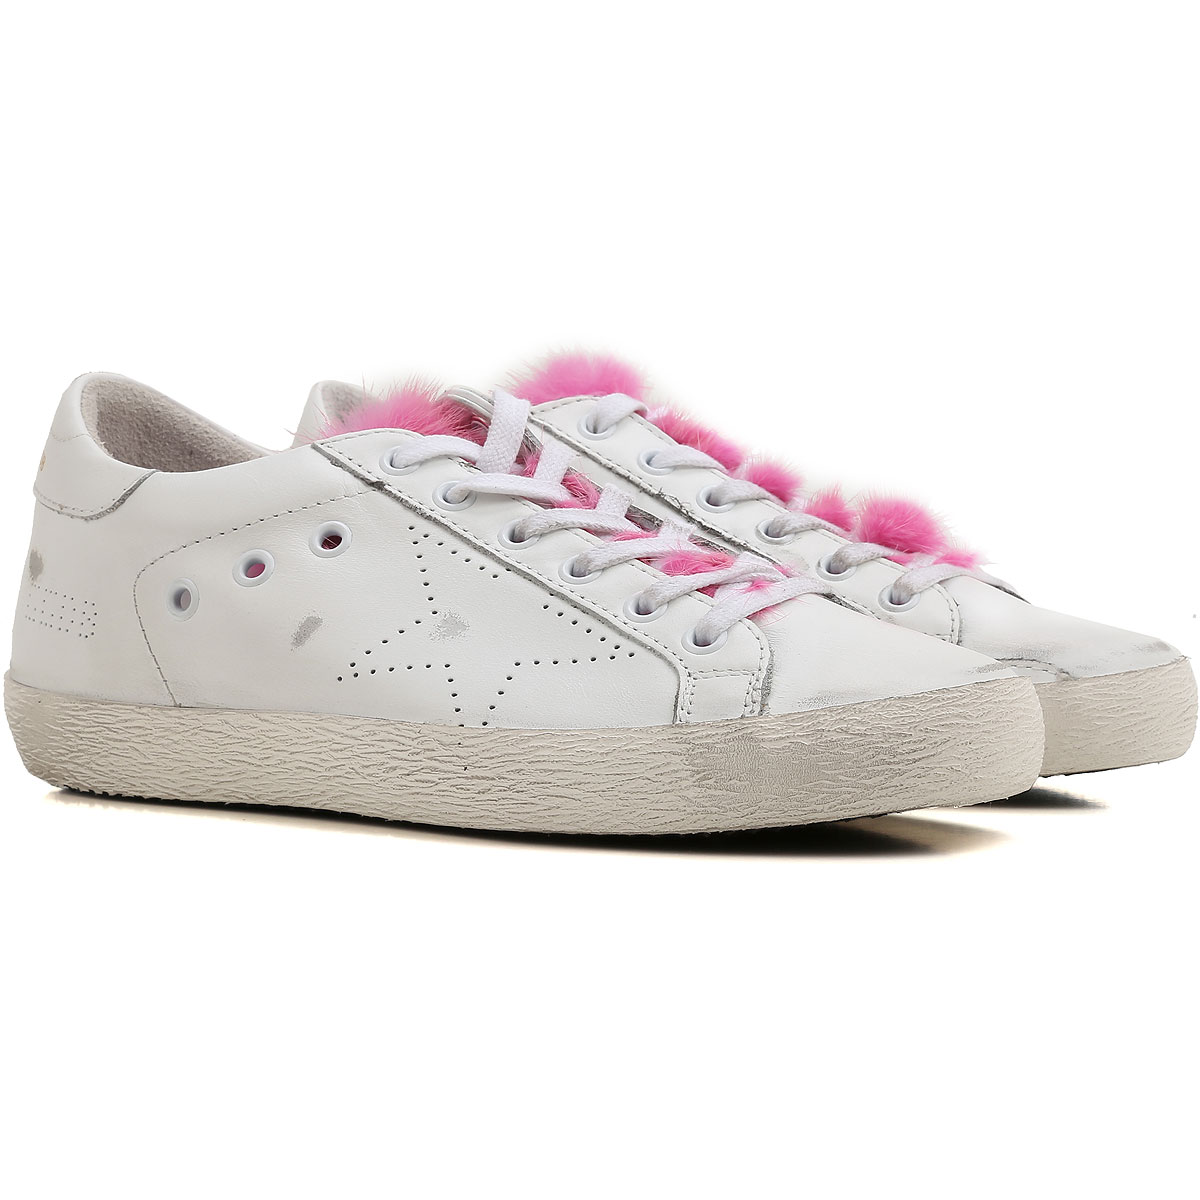 Golden Goose Sneakers for Women On Sale, fuxia, Leather, 2019, 5 6 7 8